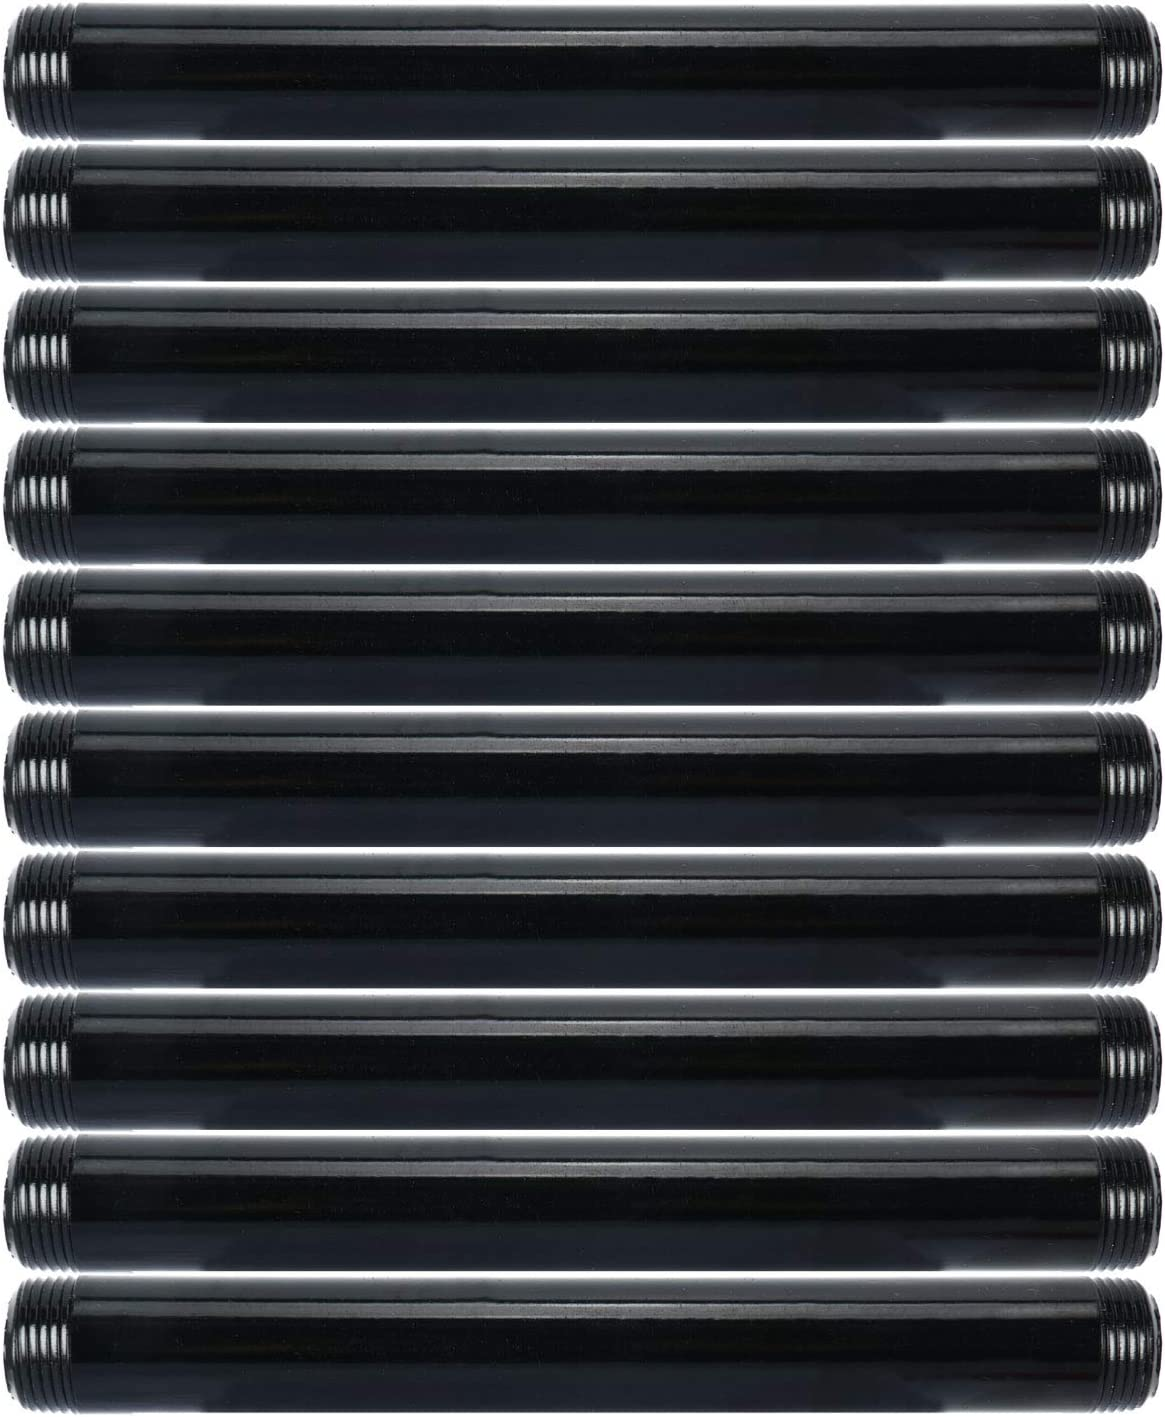 """3/4"""" x 8"""" Pipe Nipples Black Finish Malleable Cast Iron - DIY Pipe Furniture Fittings - 10 Pack"""